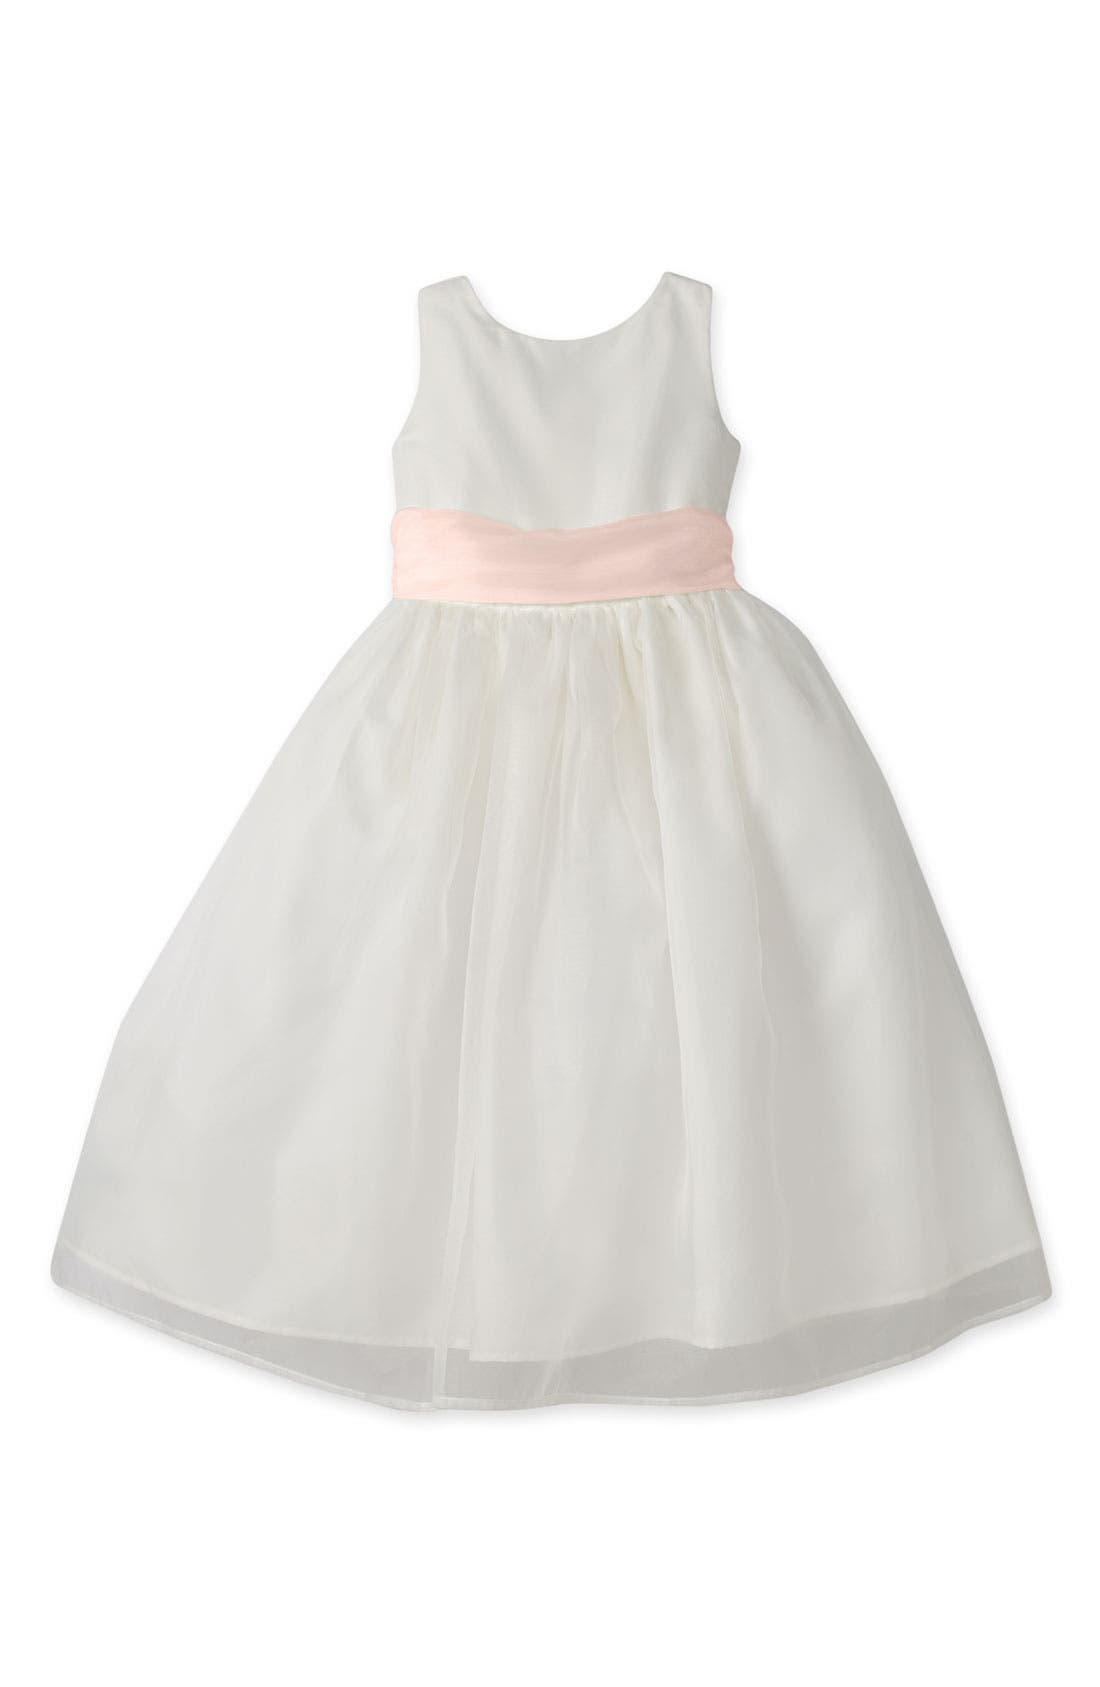 Alternate Image 1 Selected - Us Angels Sleeveless Organza Dress (Toddler Girls, Little Girls & Big Girls)